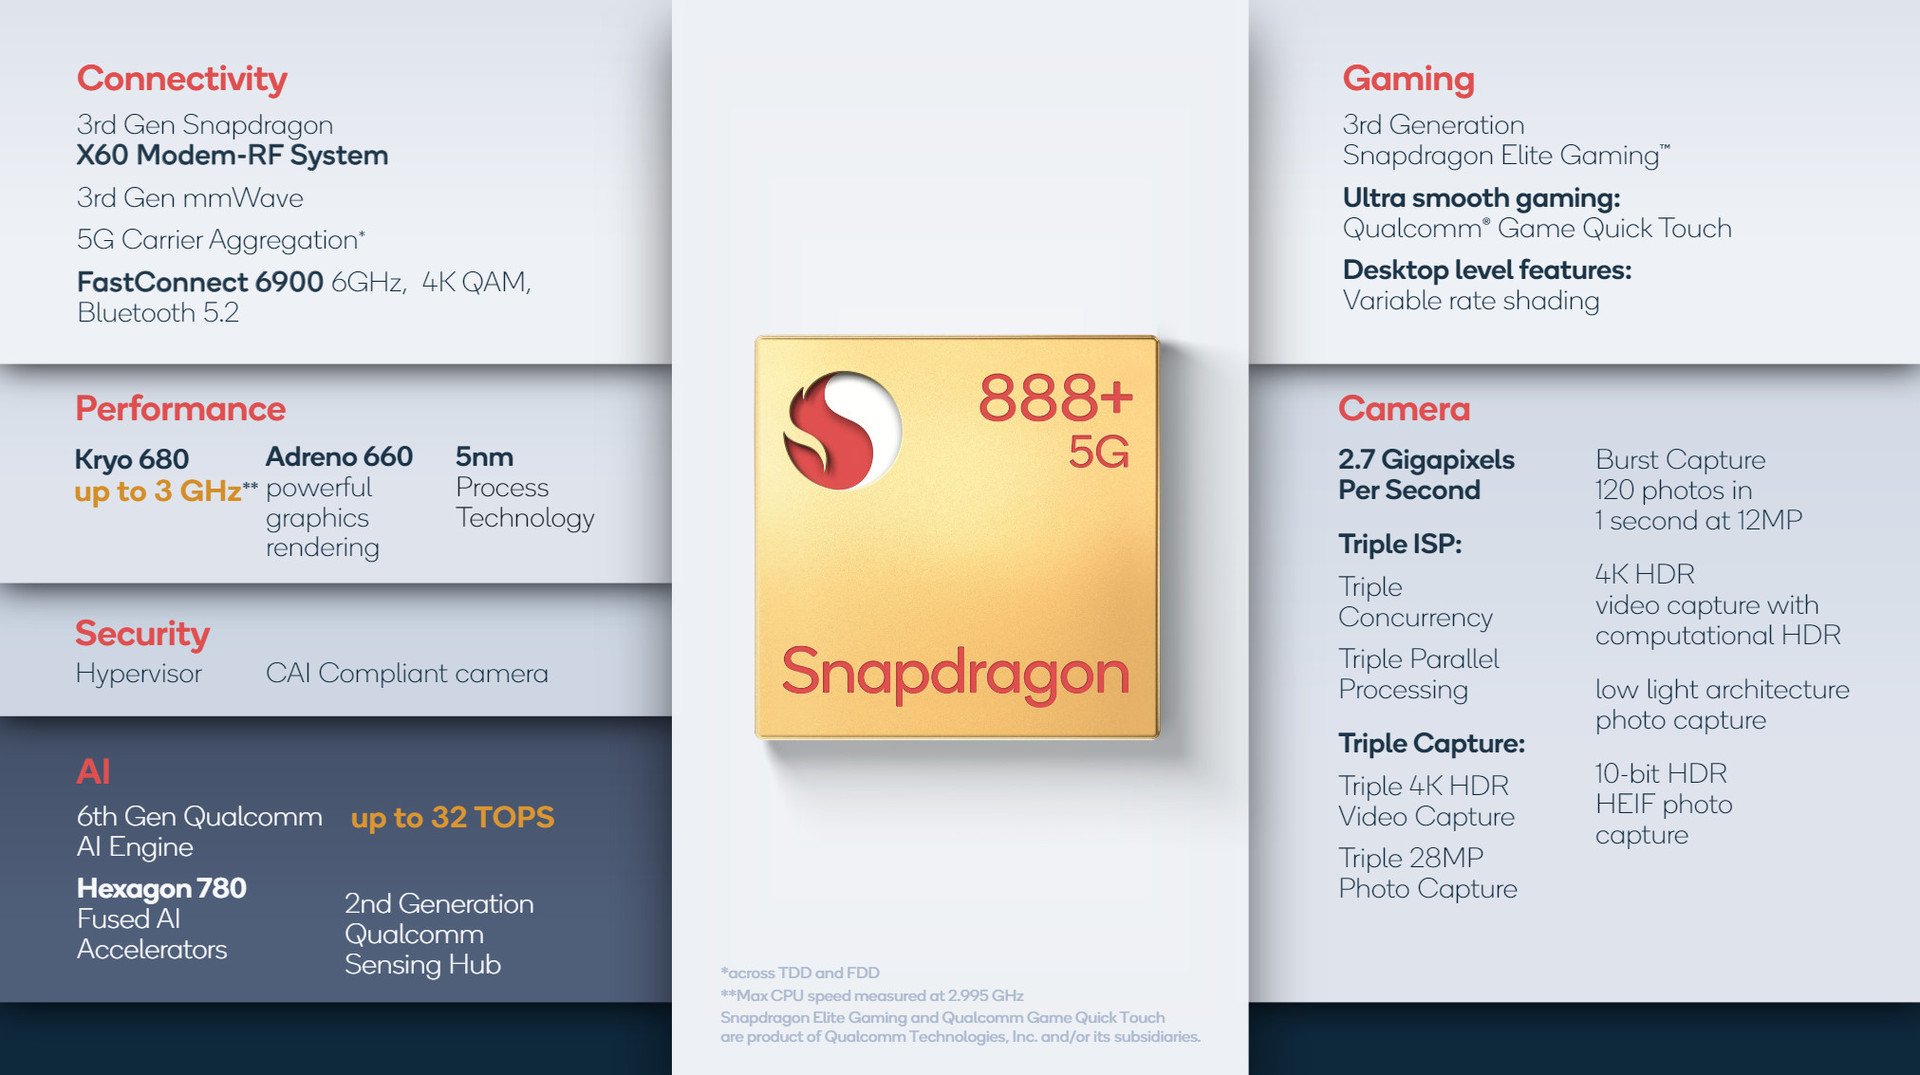 Qualcomm Snapdragon 888+ 5G Specifications Features